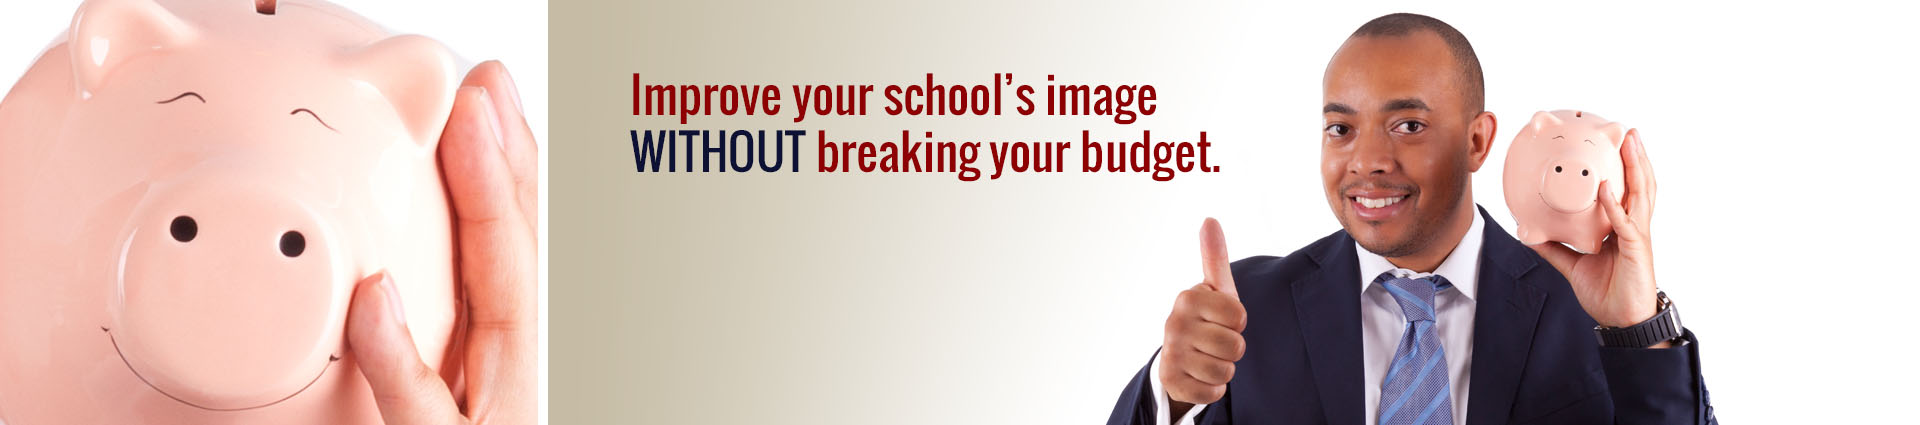 Improve your image without breaking the budget